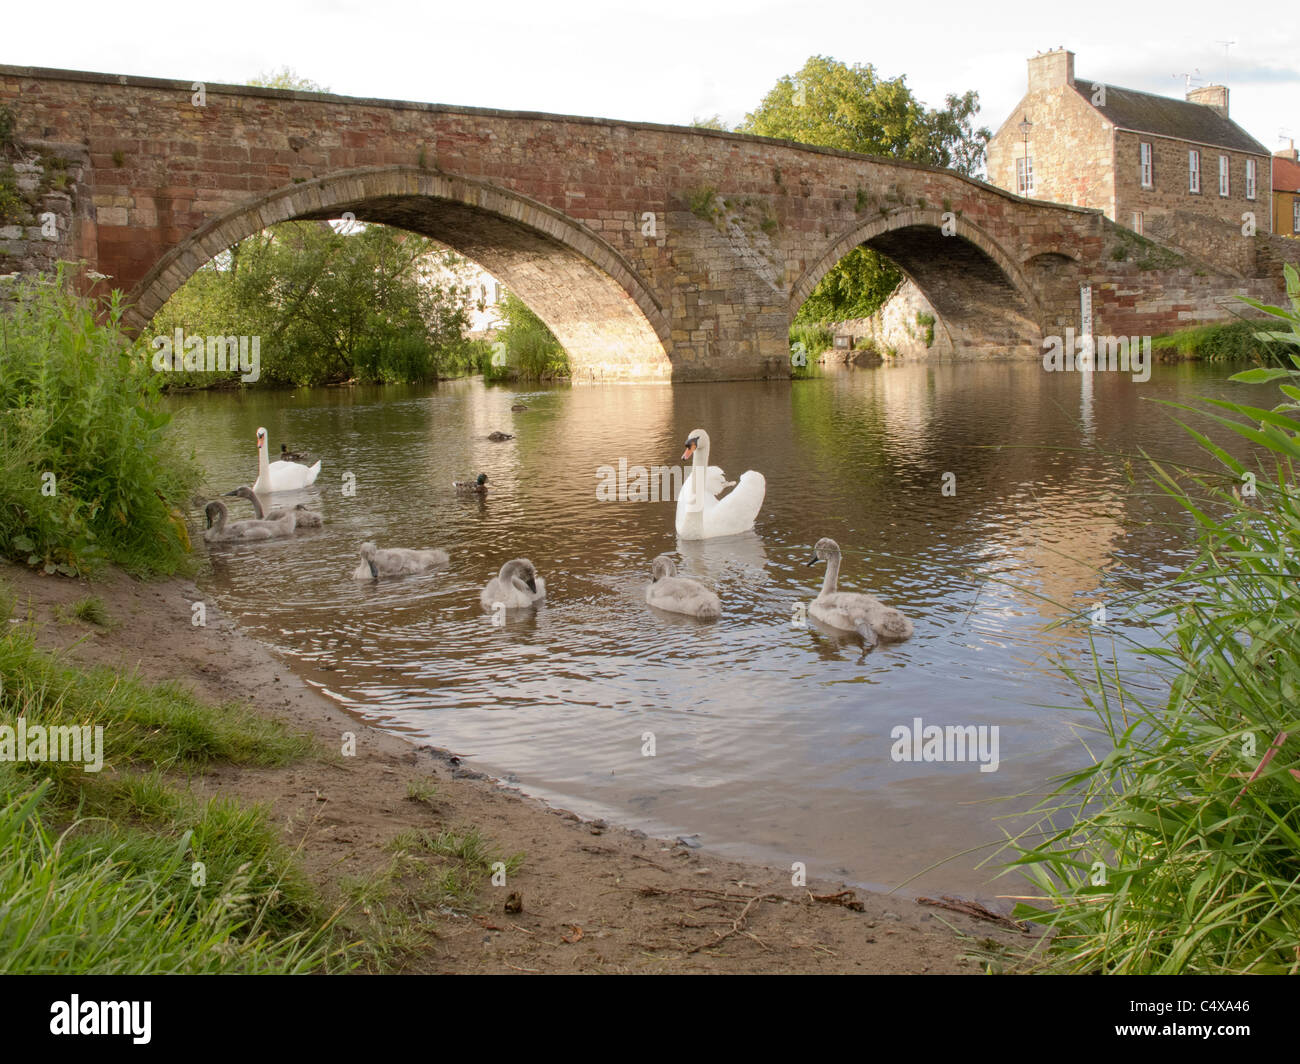 Family of swans by the Nungate Bridge in the historic town of Haddington, East Lothian, Scotland. - Stock Image